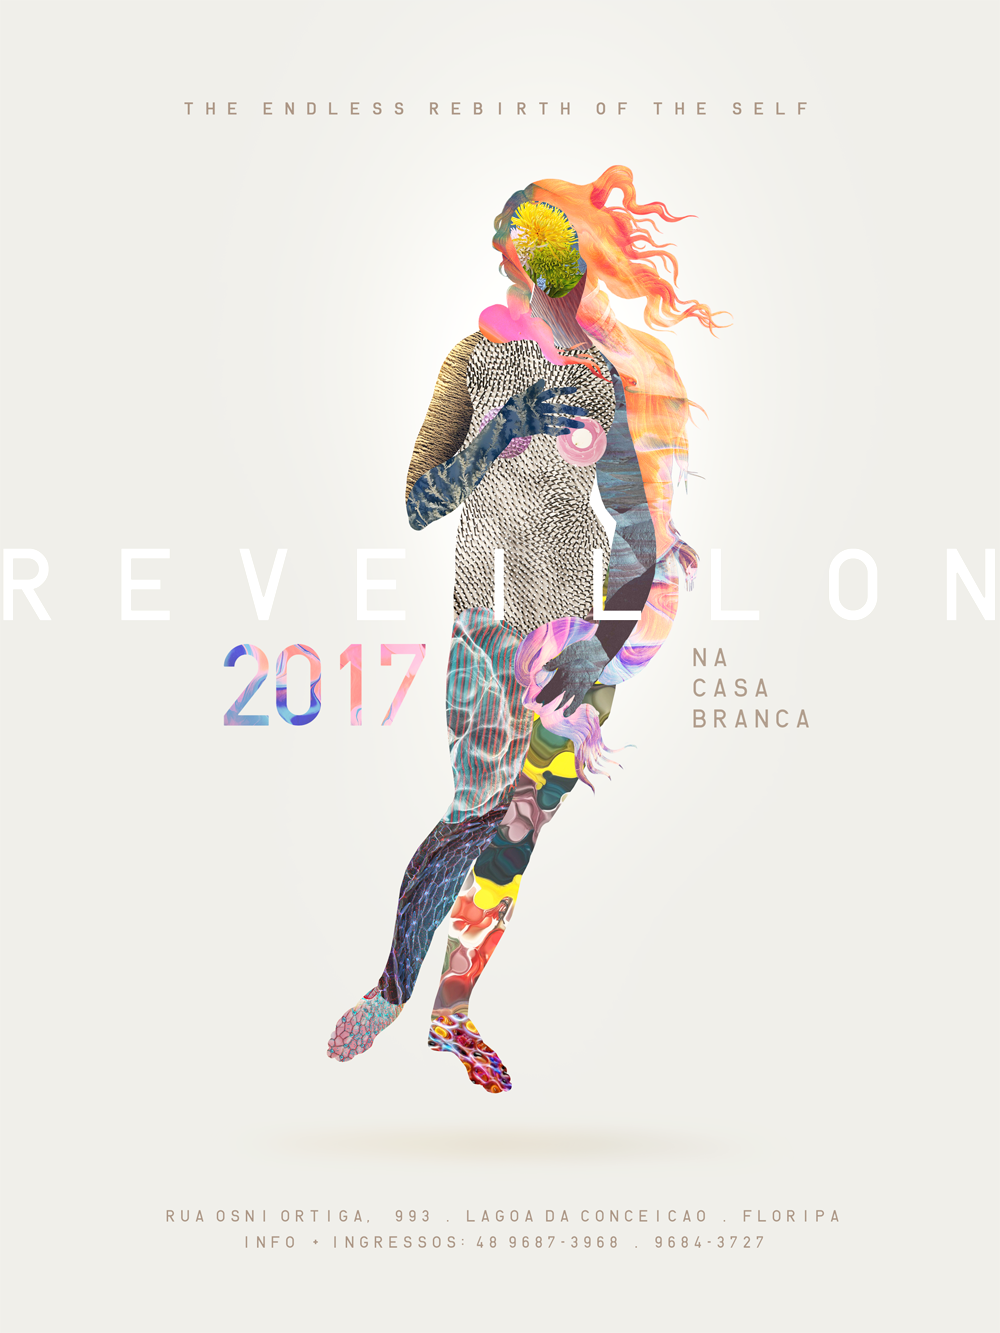 poster-endless-rebirth-of-the-self-1.png